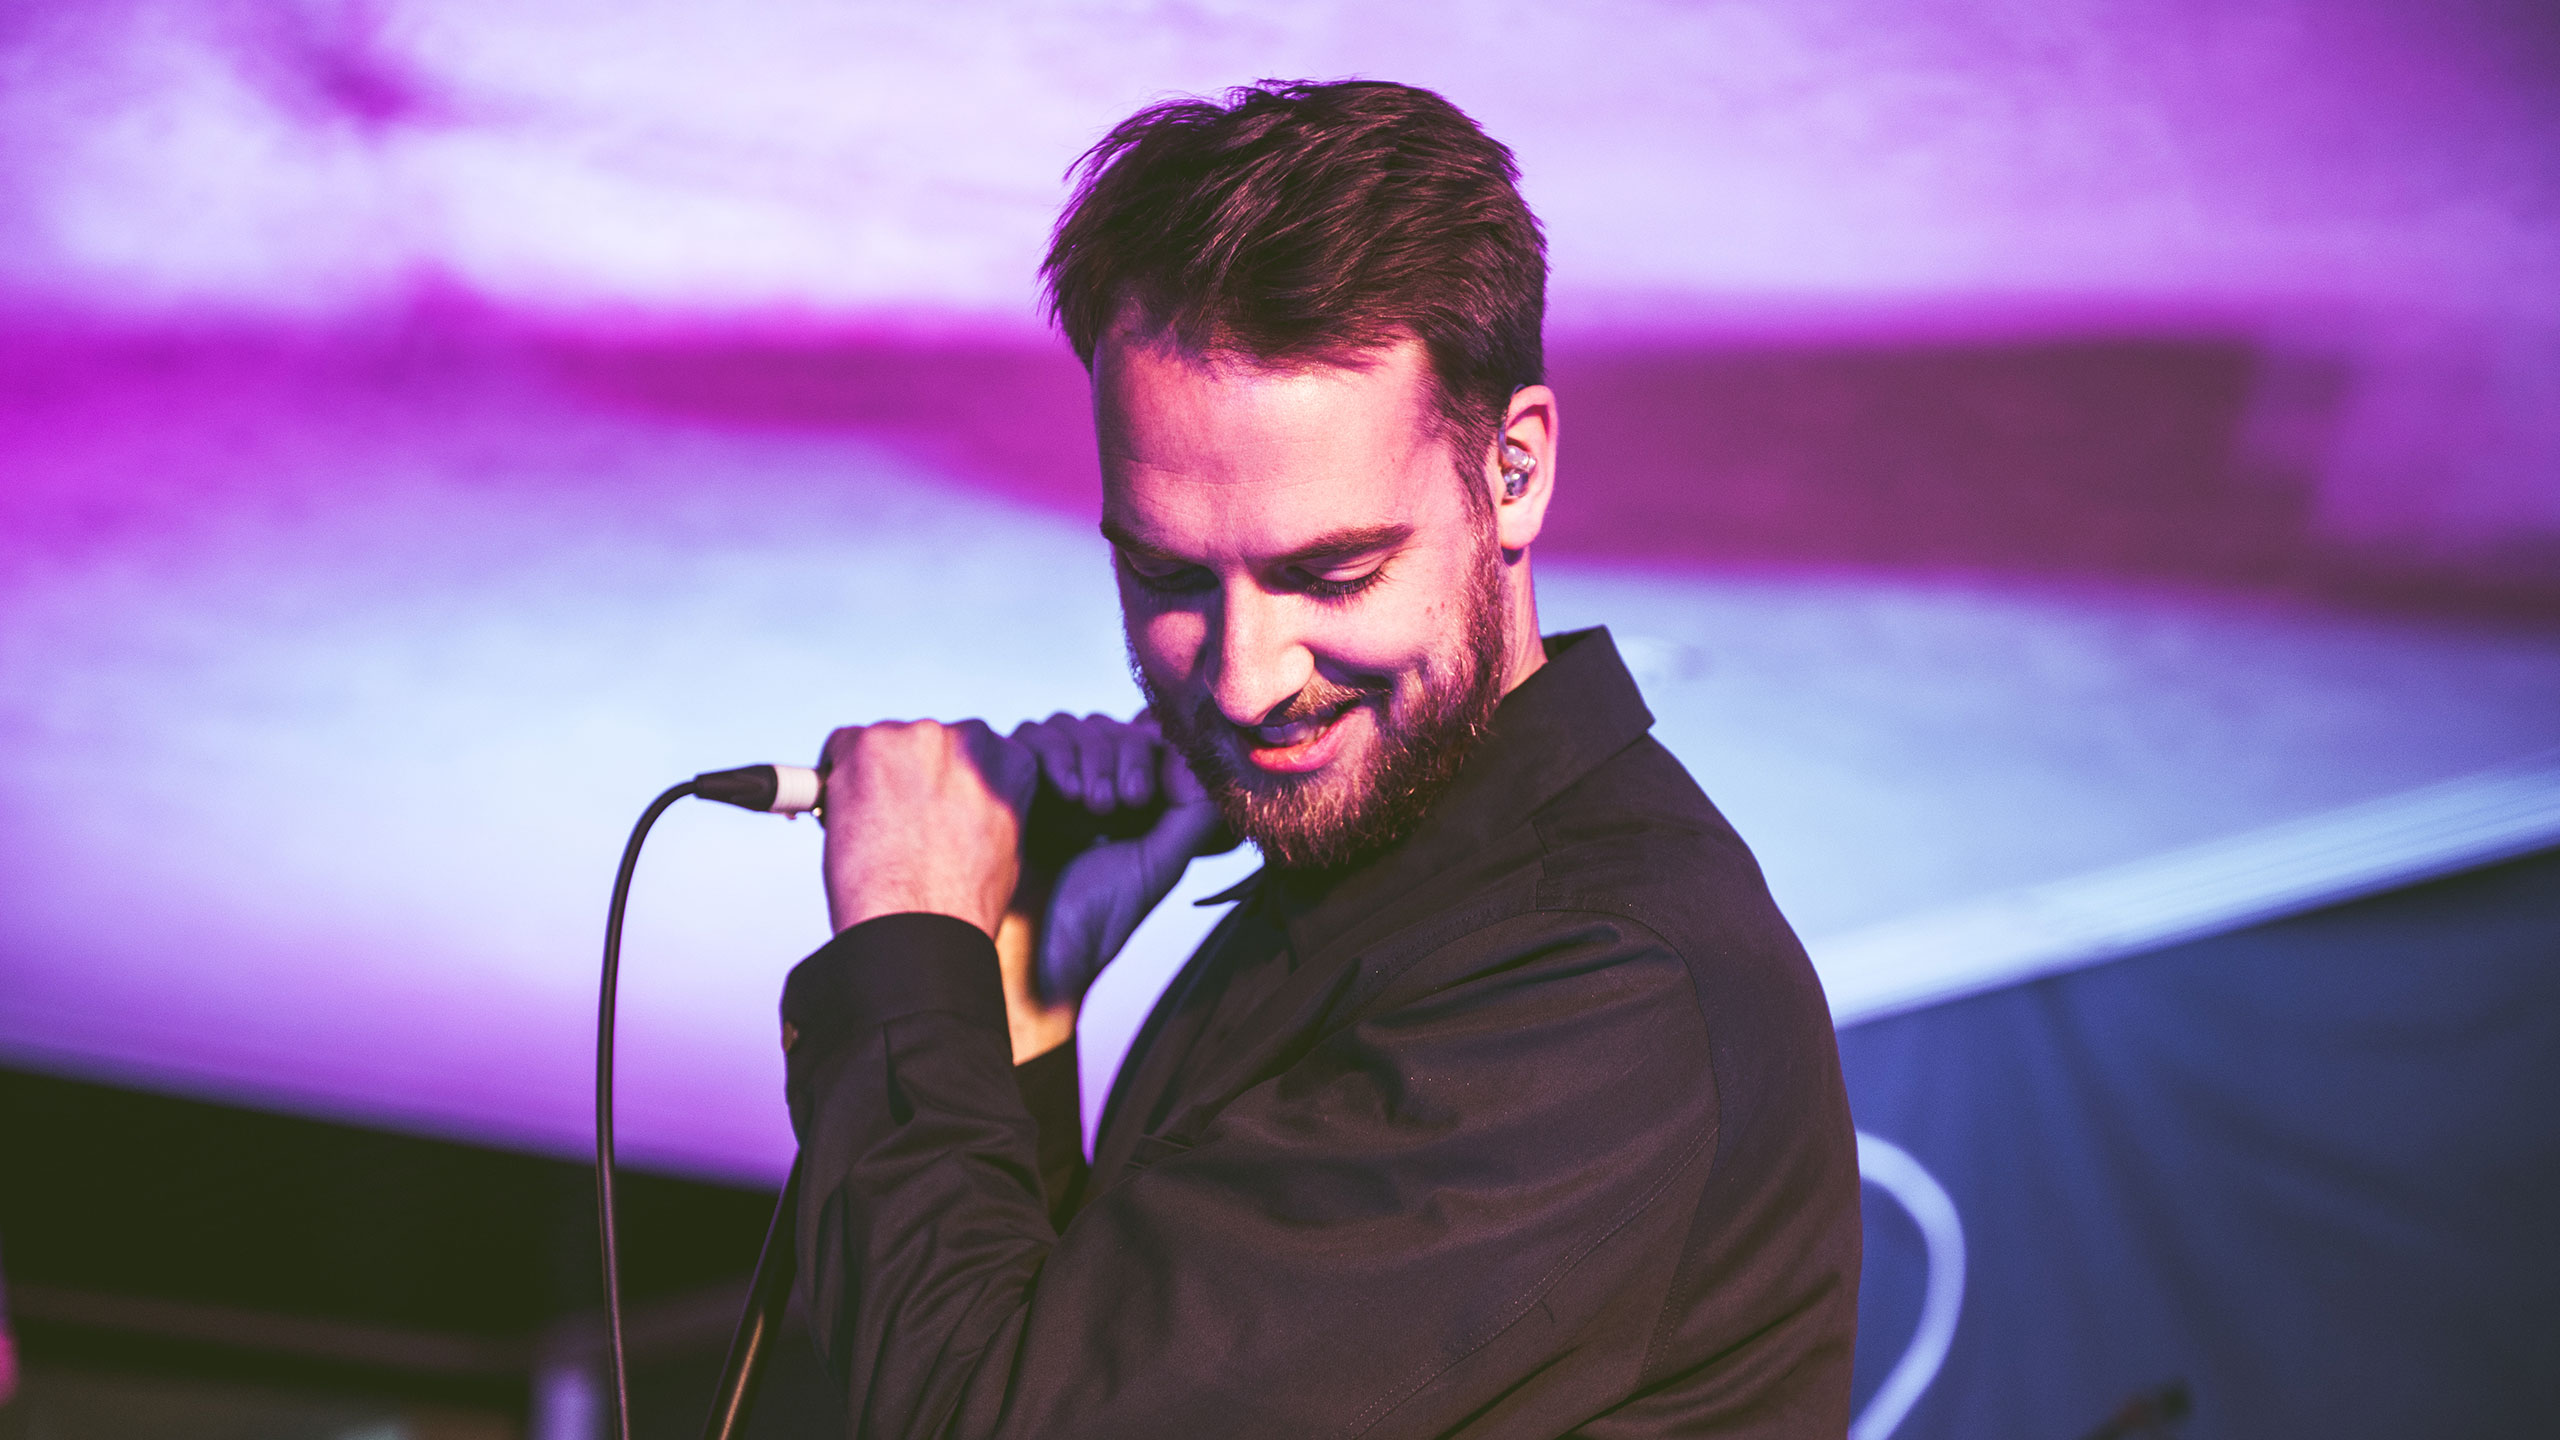 Honne's Andy Clutterbuck looks down and smiles on stage at PRS Presents